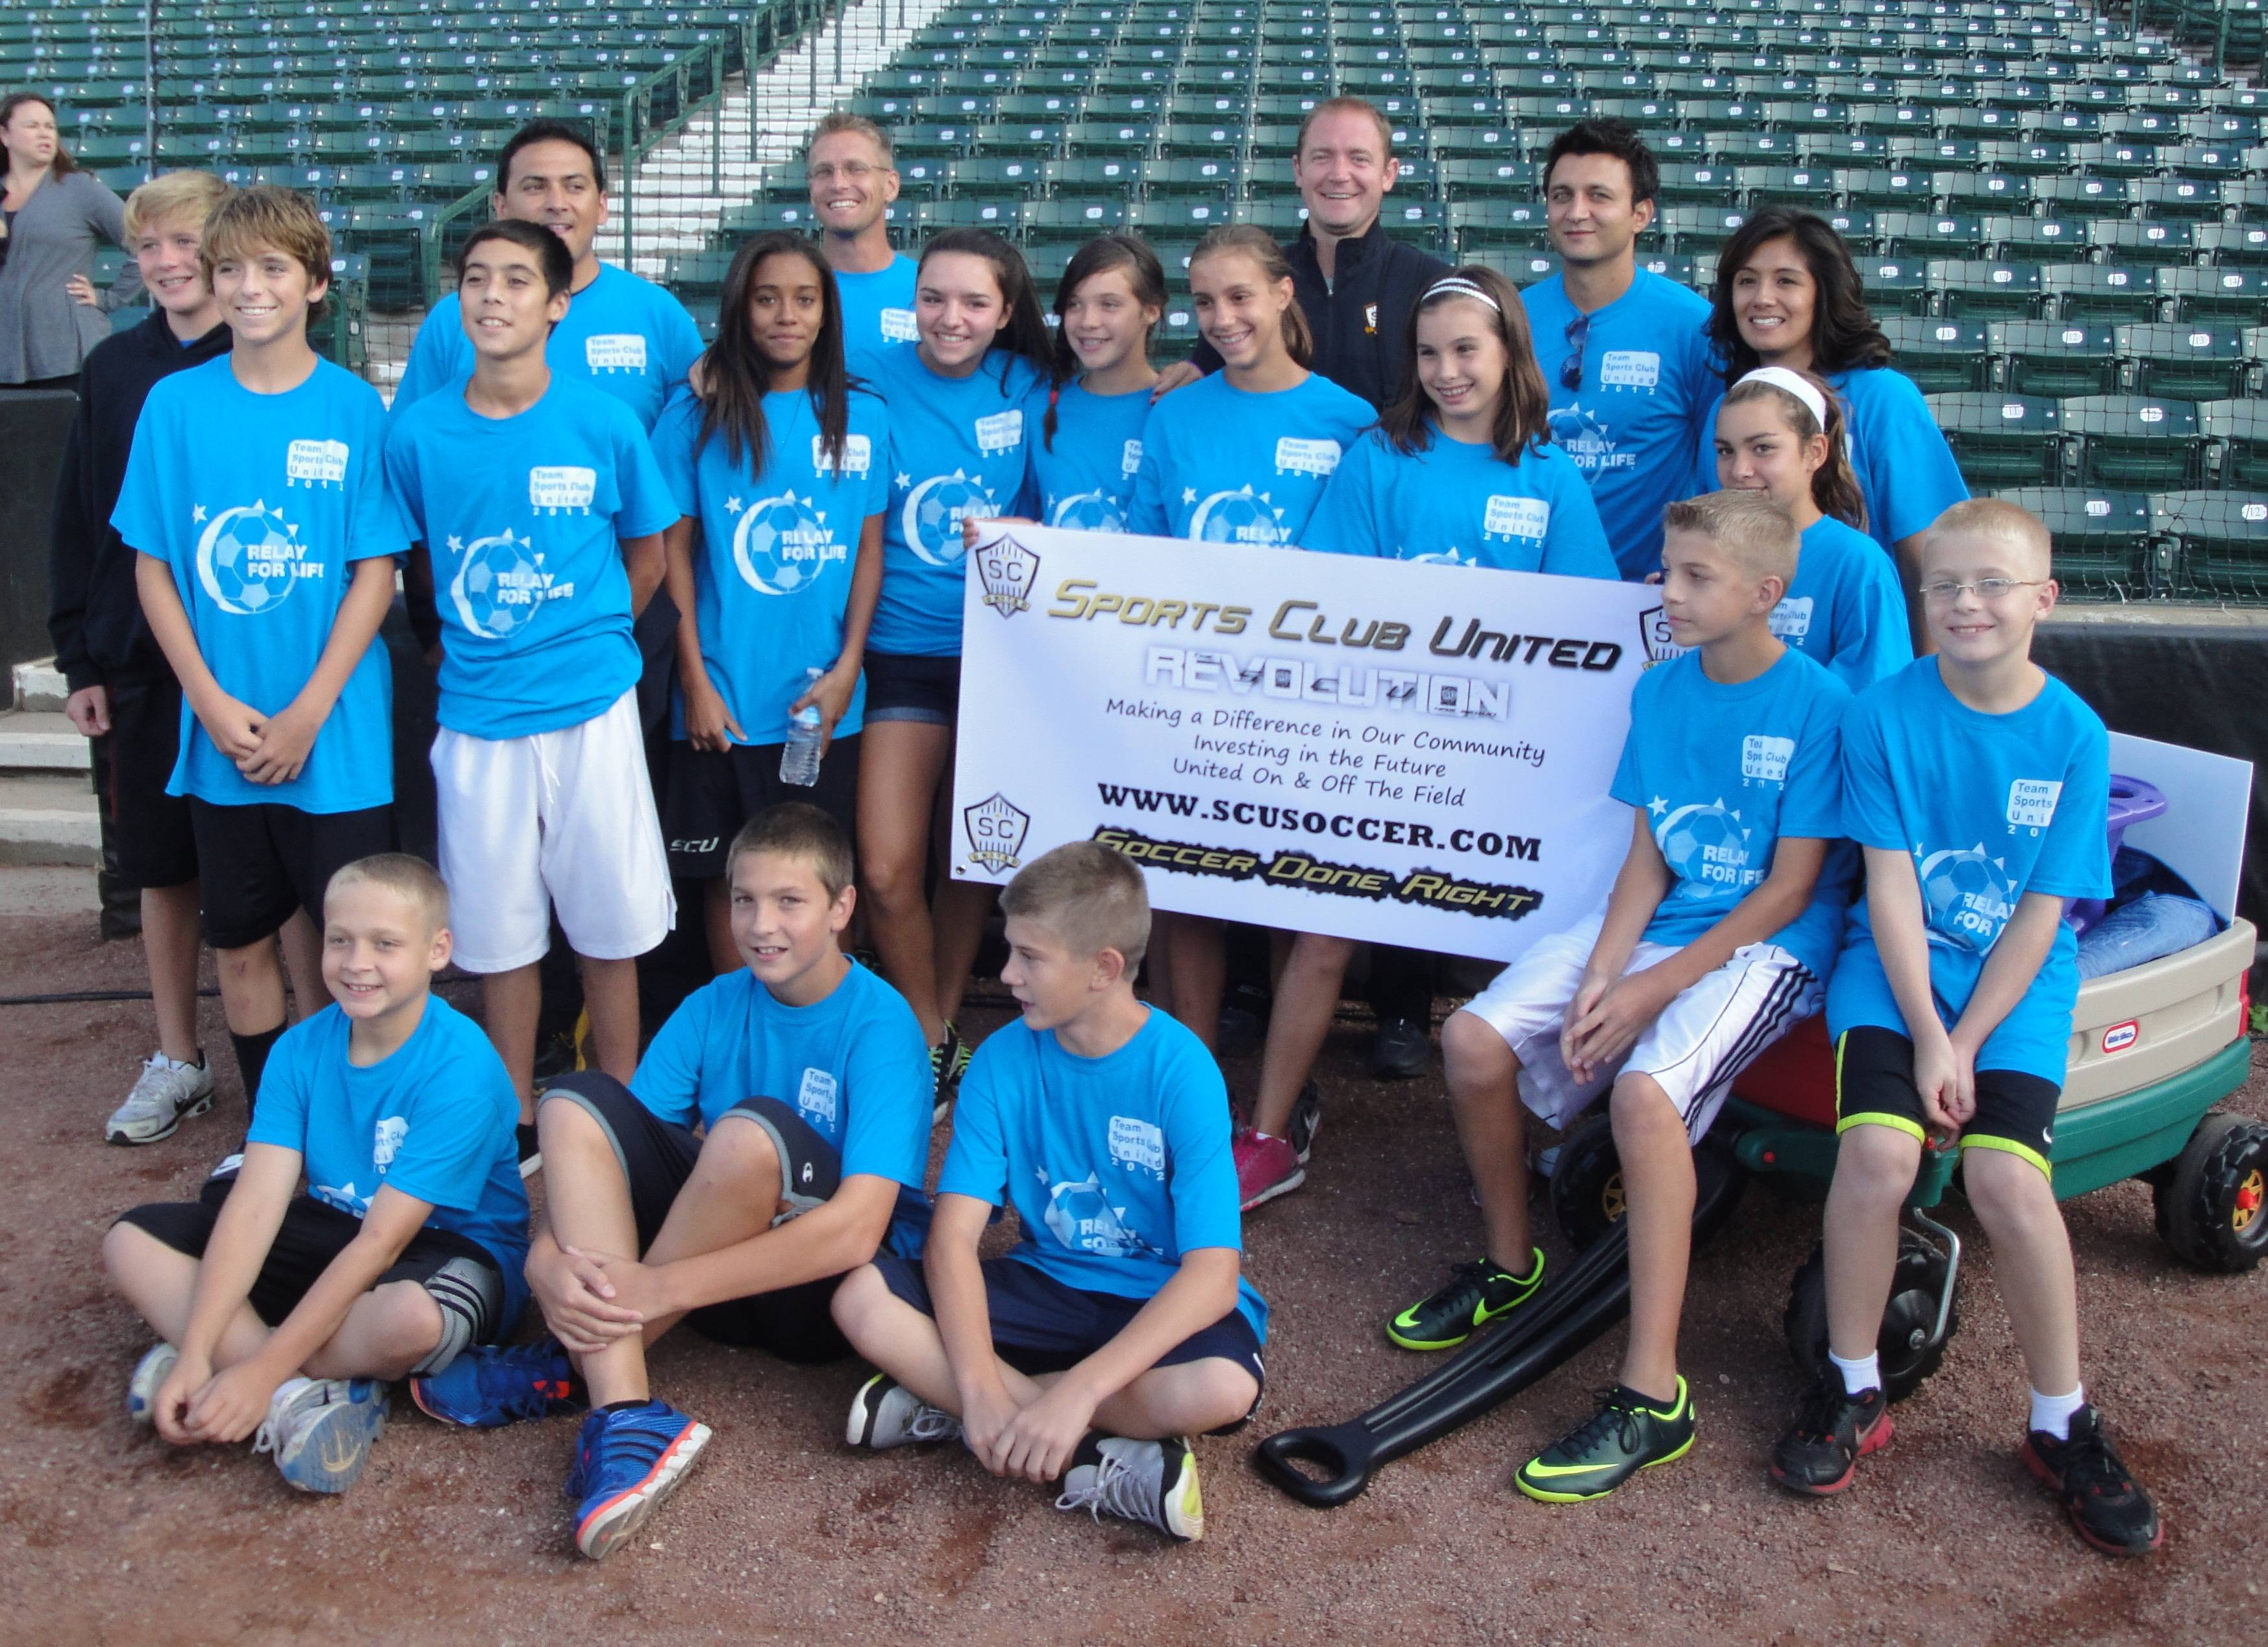 Pictured at Boomers Stadium: Standing from left to right: Jason Schoo, Anthony Haaland, Austin Lara, Coach Jose Skrobot, Brooklyn Gibson, Coach Adam Raupp, Elizabeth Dolce, Kailyn Loureiro, Kaylin Feeley, SCU VP-Brad Stevens, Jessica Smeltzer, SCU President-Hamid Mehreioskouei, Maria Gibson, Sitting: Aaron Bogner, Aaron Kline, Michael Rizzo, Ian Raupp, Emma Aguilar & Sam Bogner.